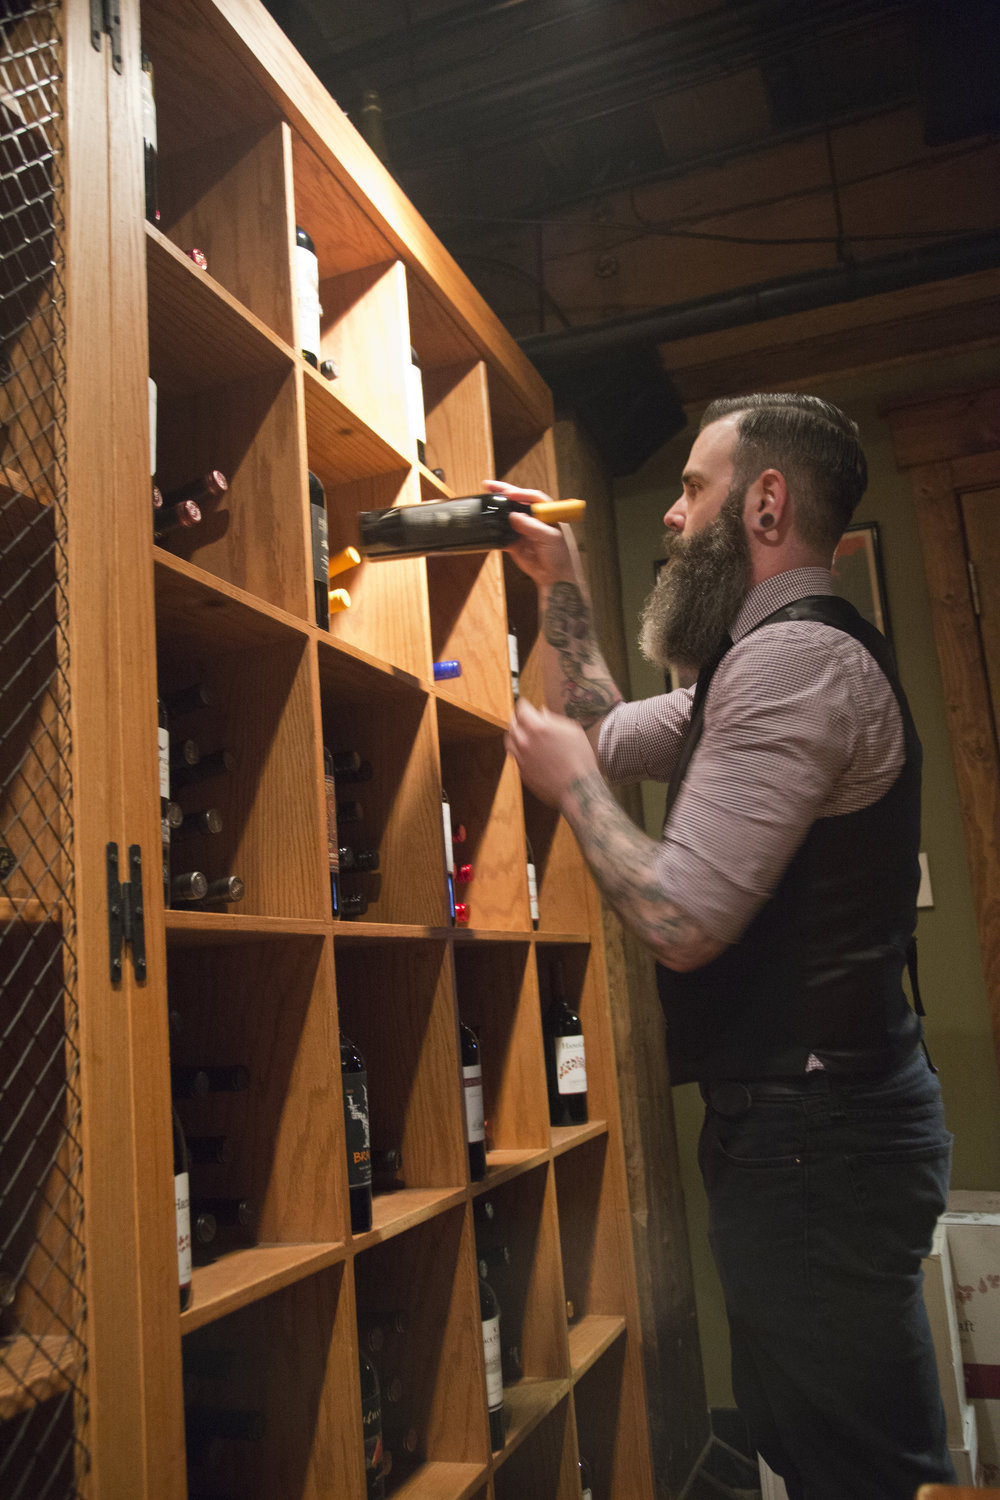 The Gilmore Collection restaurants' wine lists are ever-changing and growing. Haven't stopped by in awhile? You're sure to find something new that you'll love!